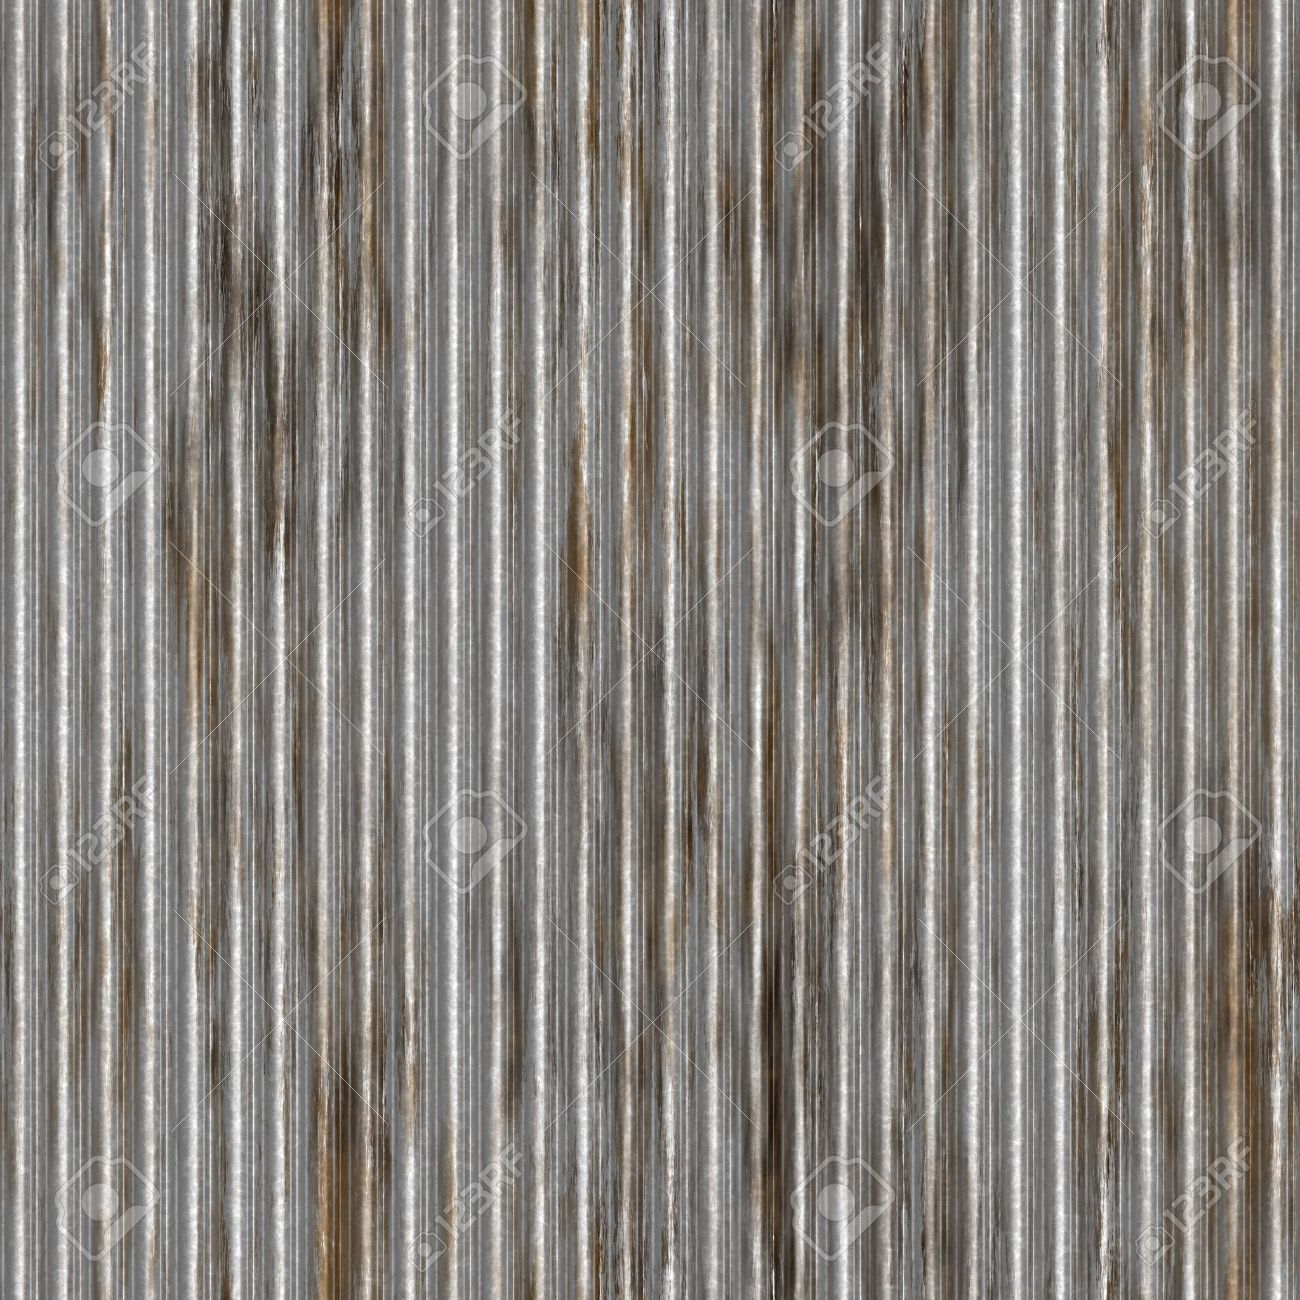 A corrugated metal texture with rust that tiles seamlessly as a pattern   Makes a great. A Corrugated Metal Texture With Rust That Tiles Seamlessly As